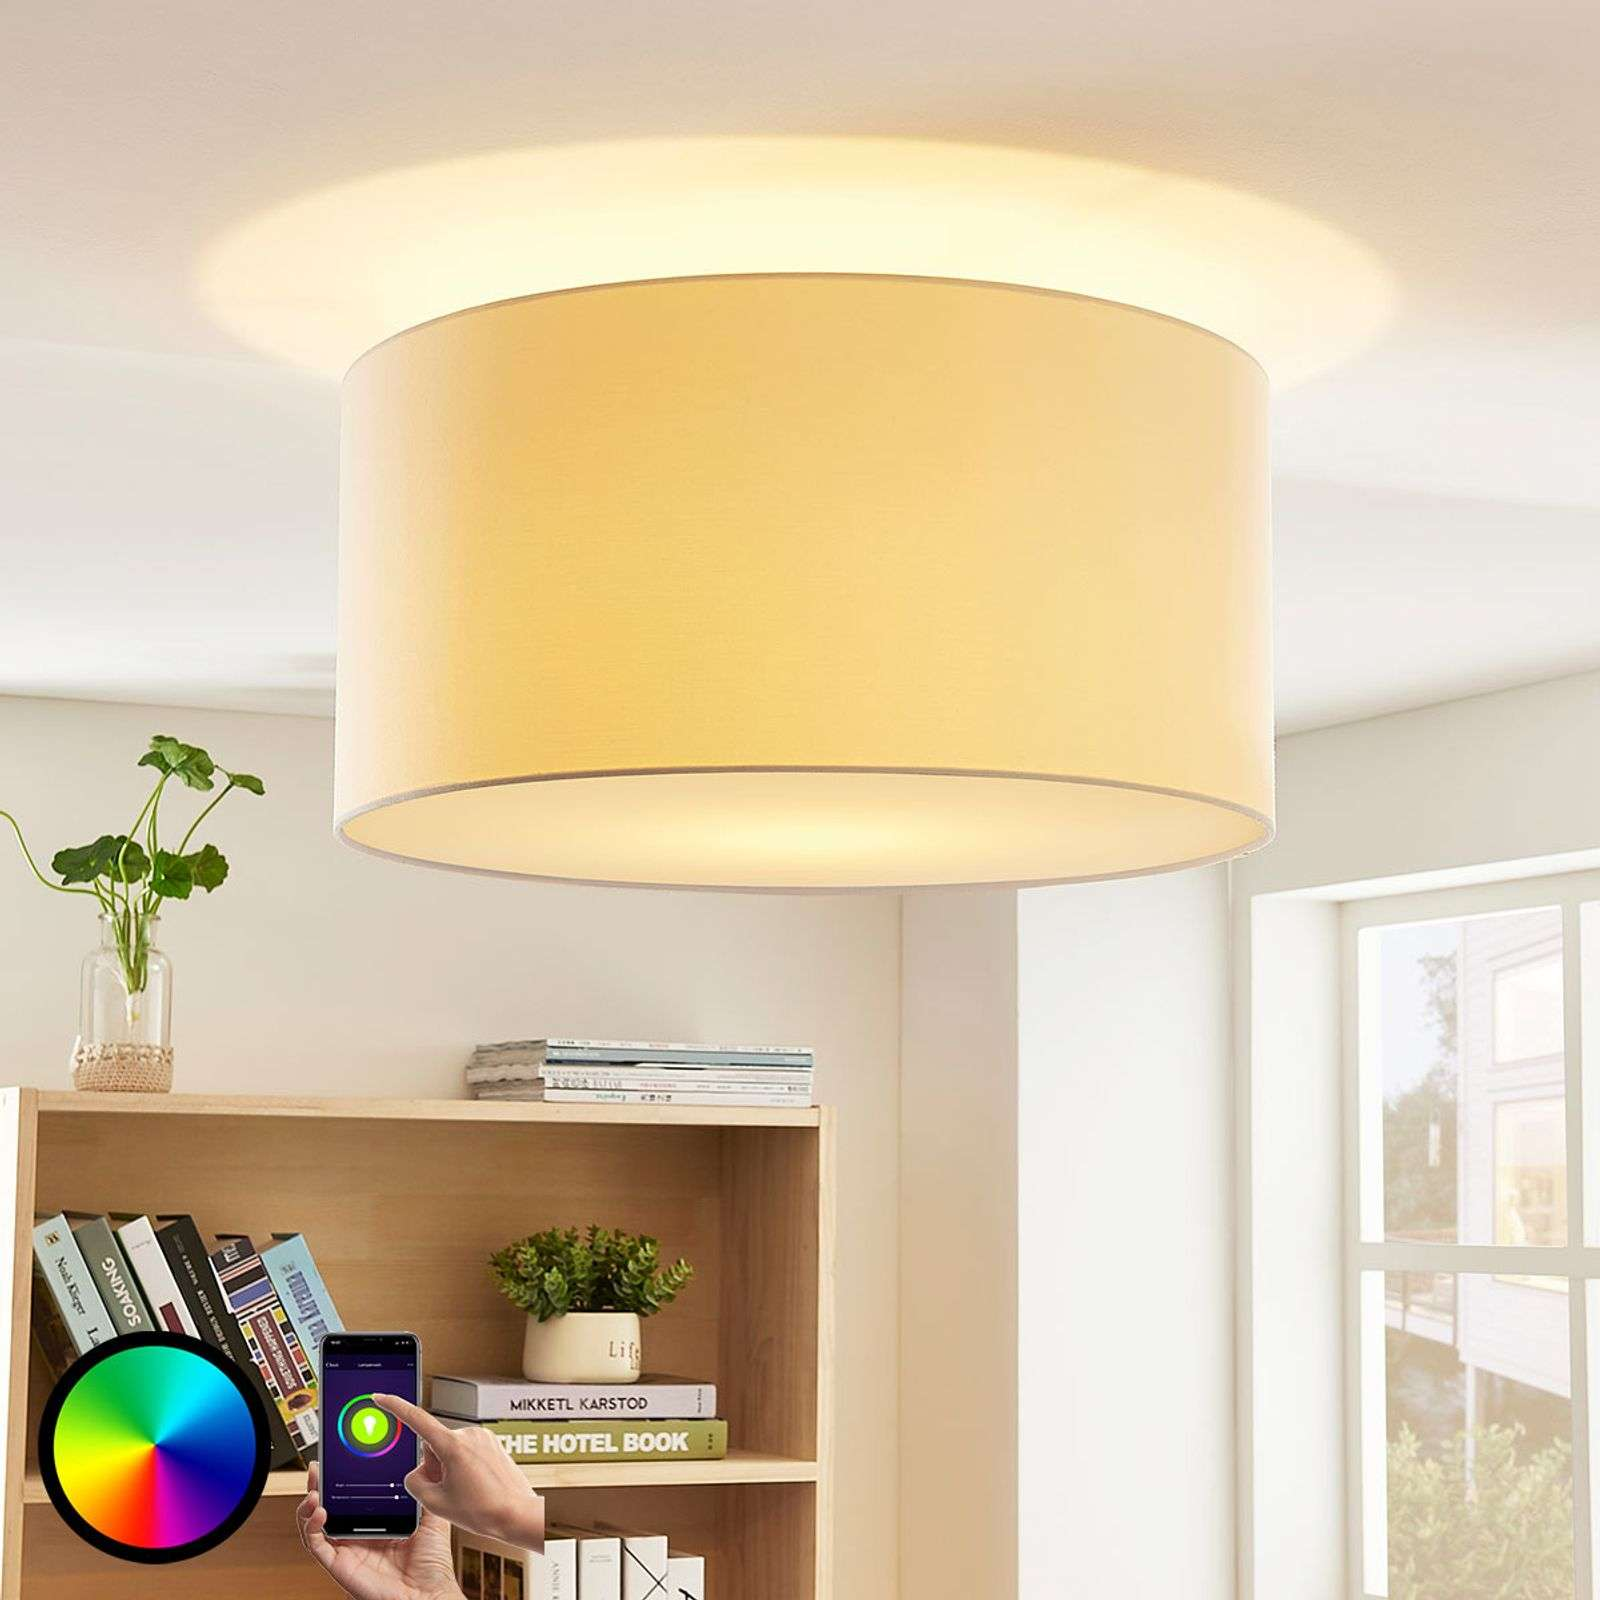 Lindby Smart RGB-LED plafondlamp Everly voor app